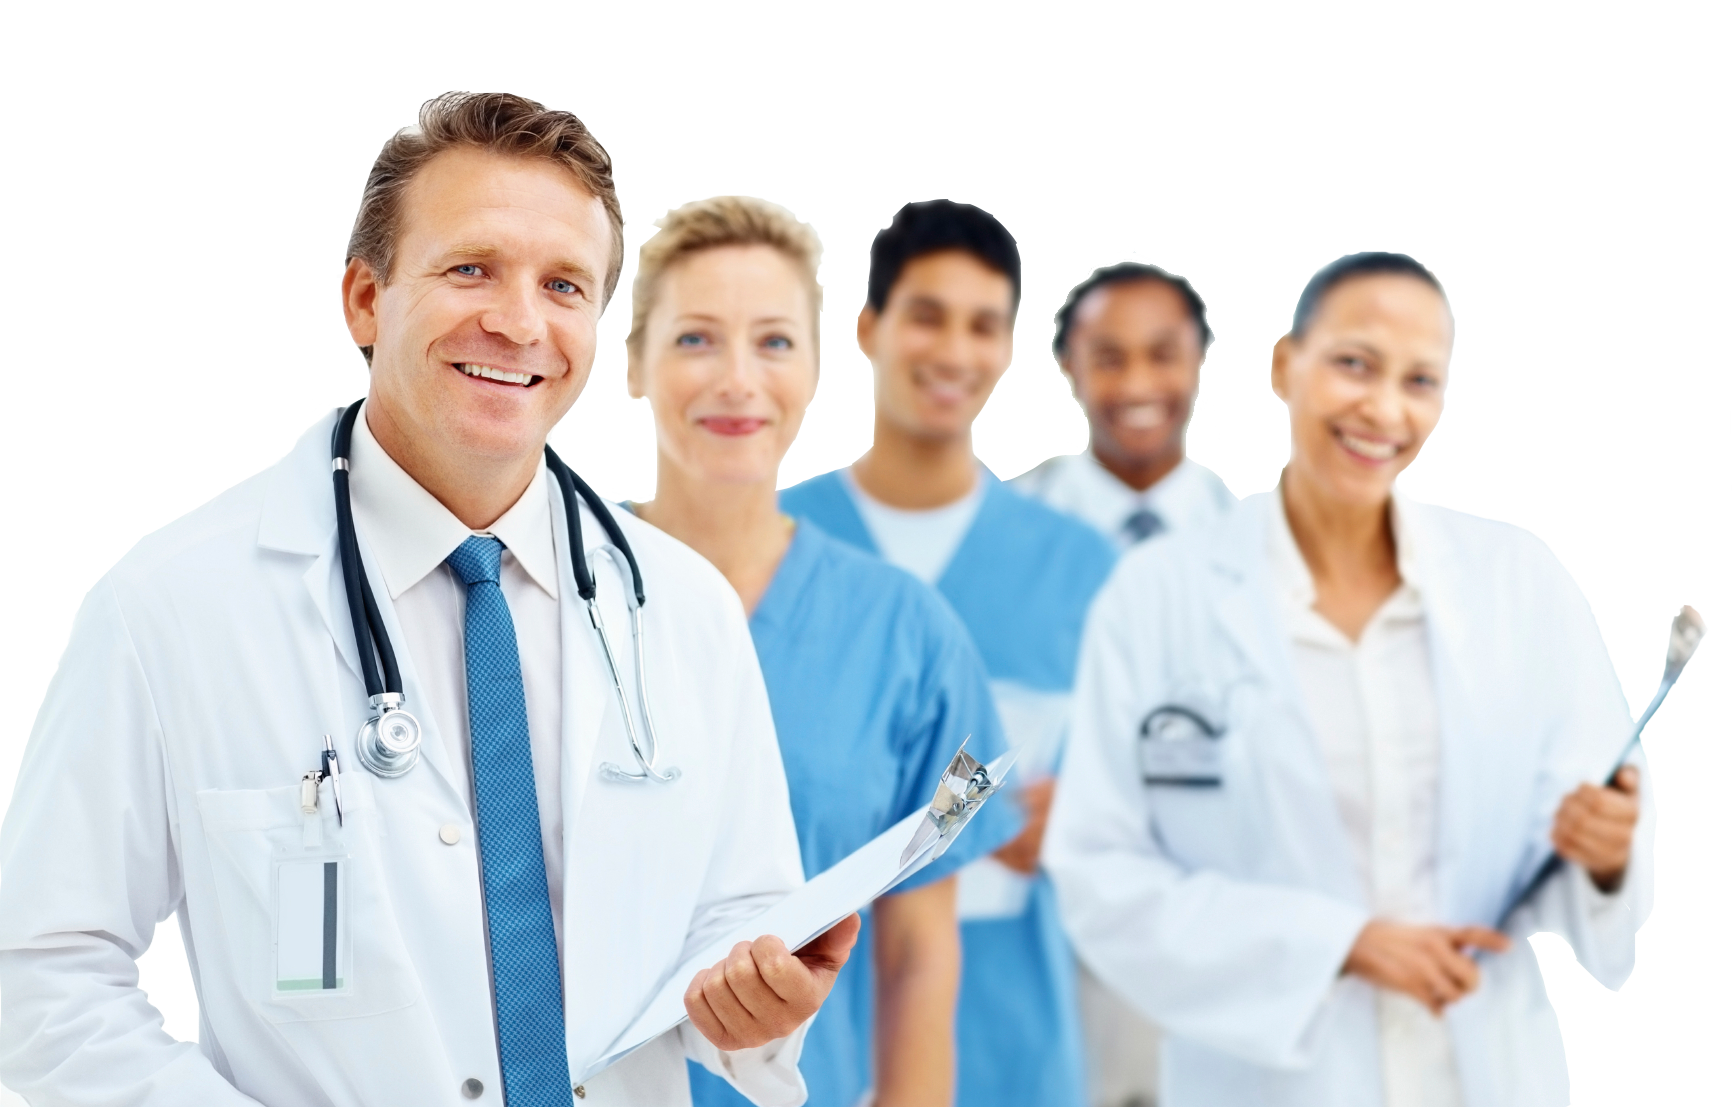 Best Doctors Network for Texas Workers' Compensation, Personal Injury and Auto Injury Patients